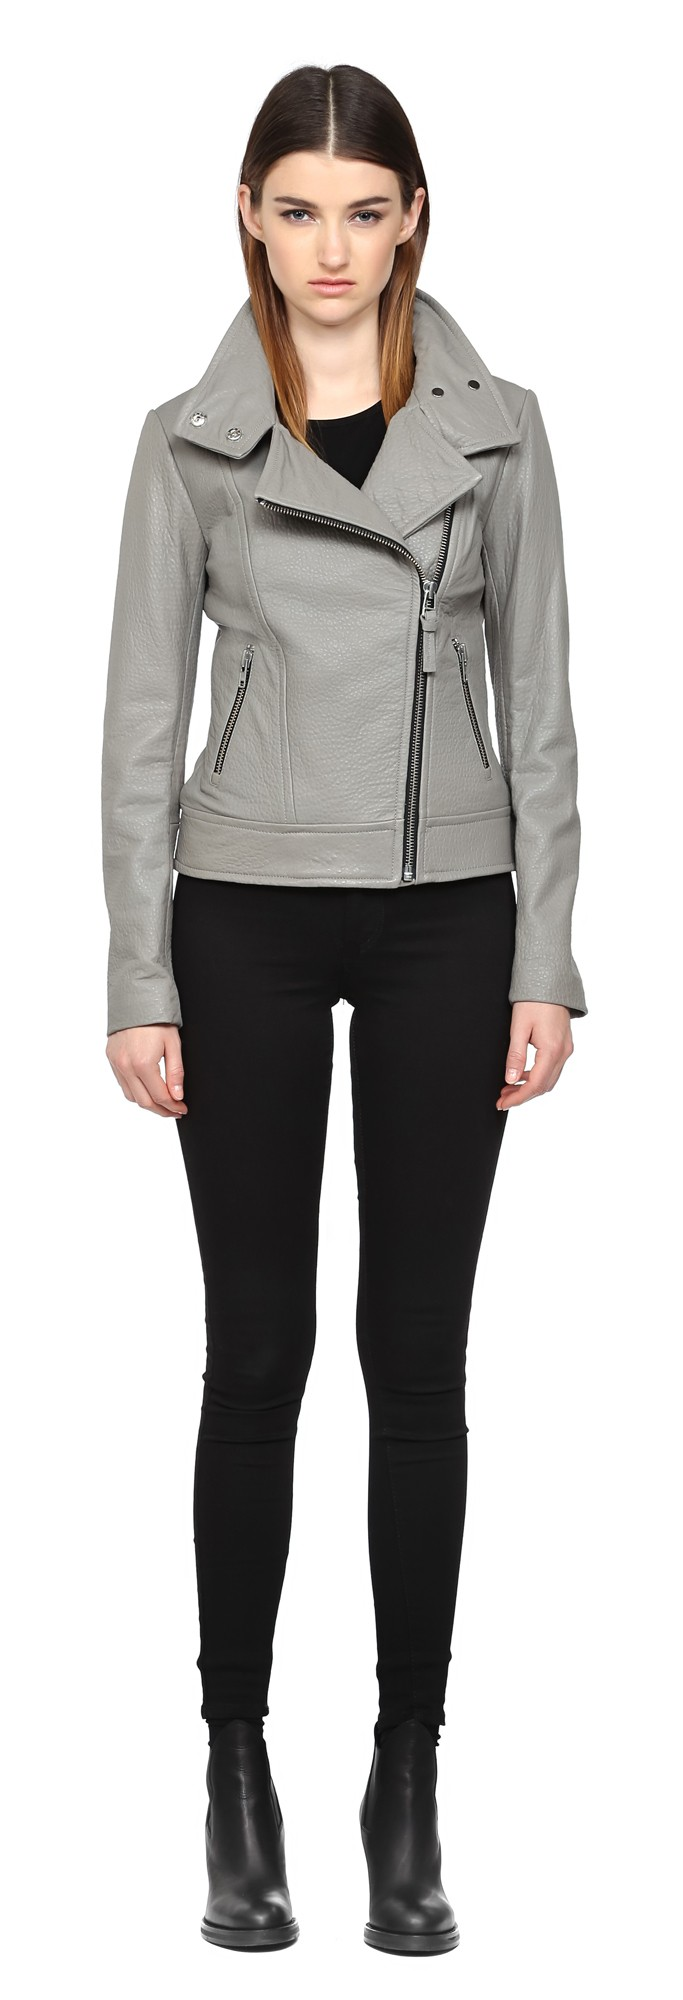 Ash Pebble Leather Jacket Mackage Women